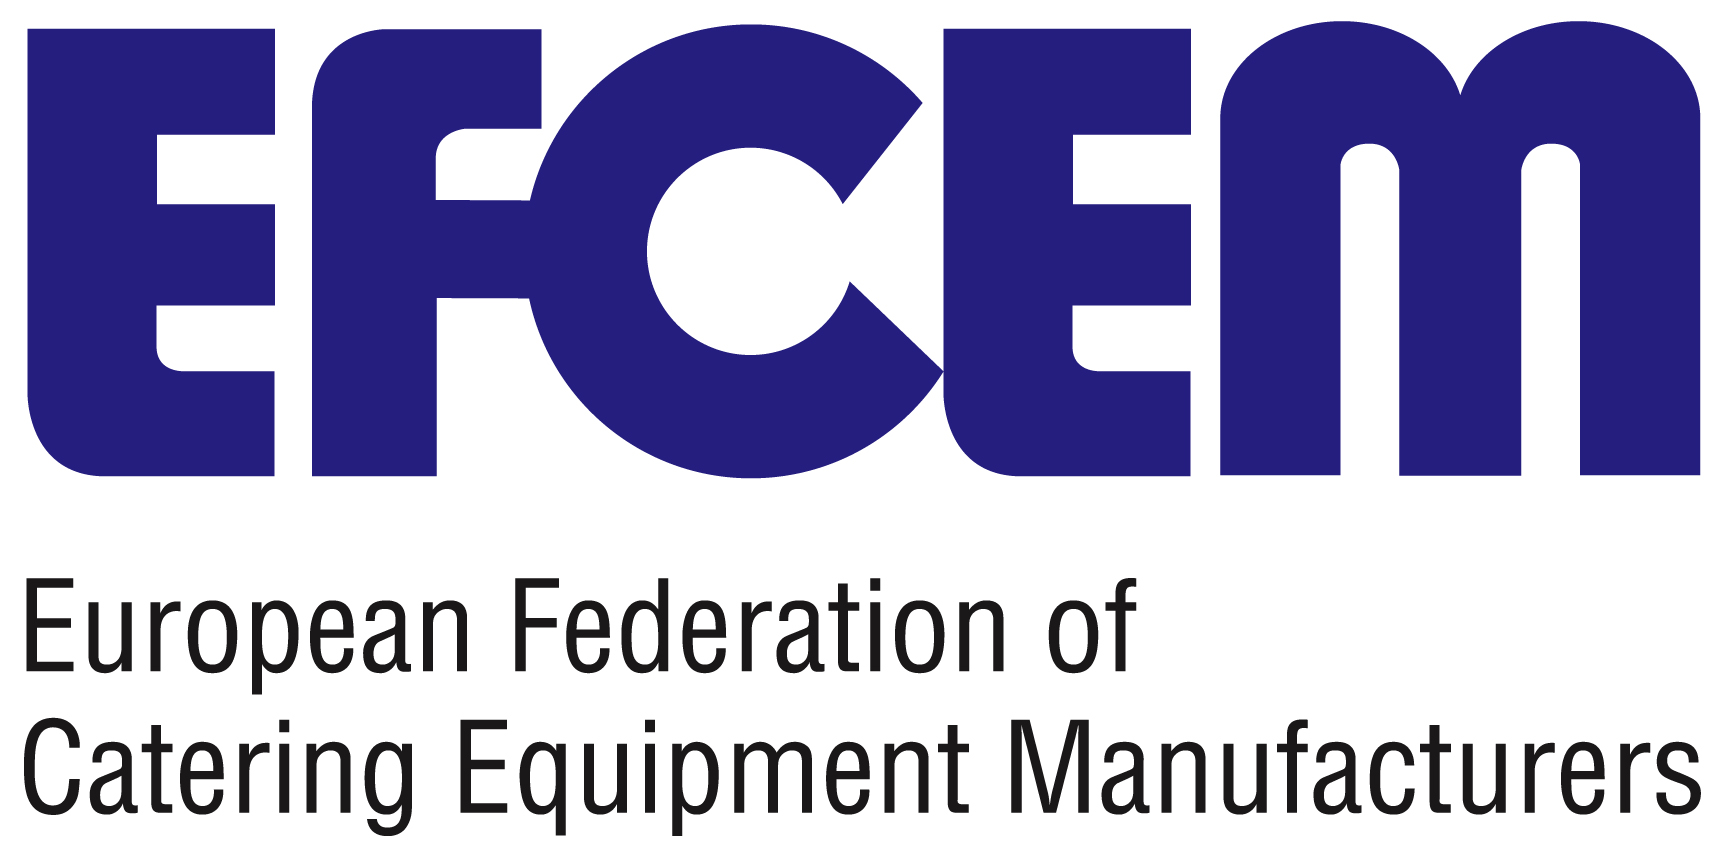 logo for European Federation of Catering Equipment Manufacturers